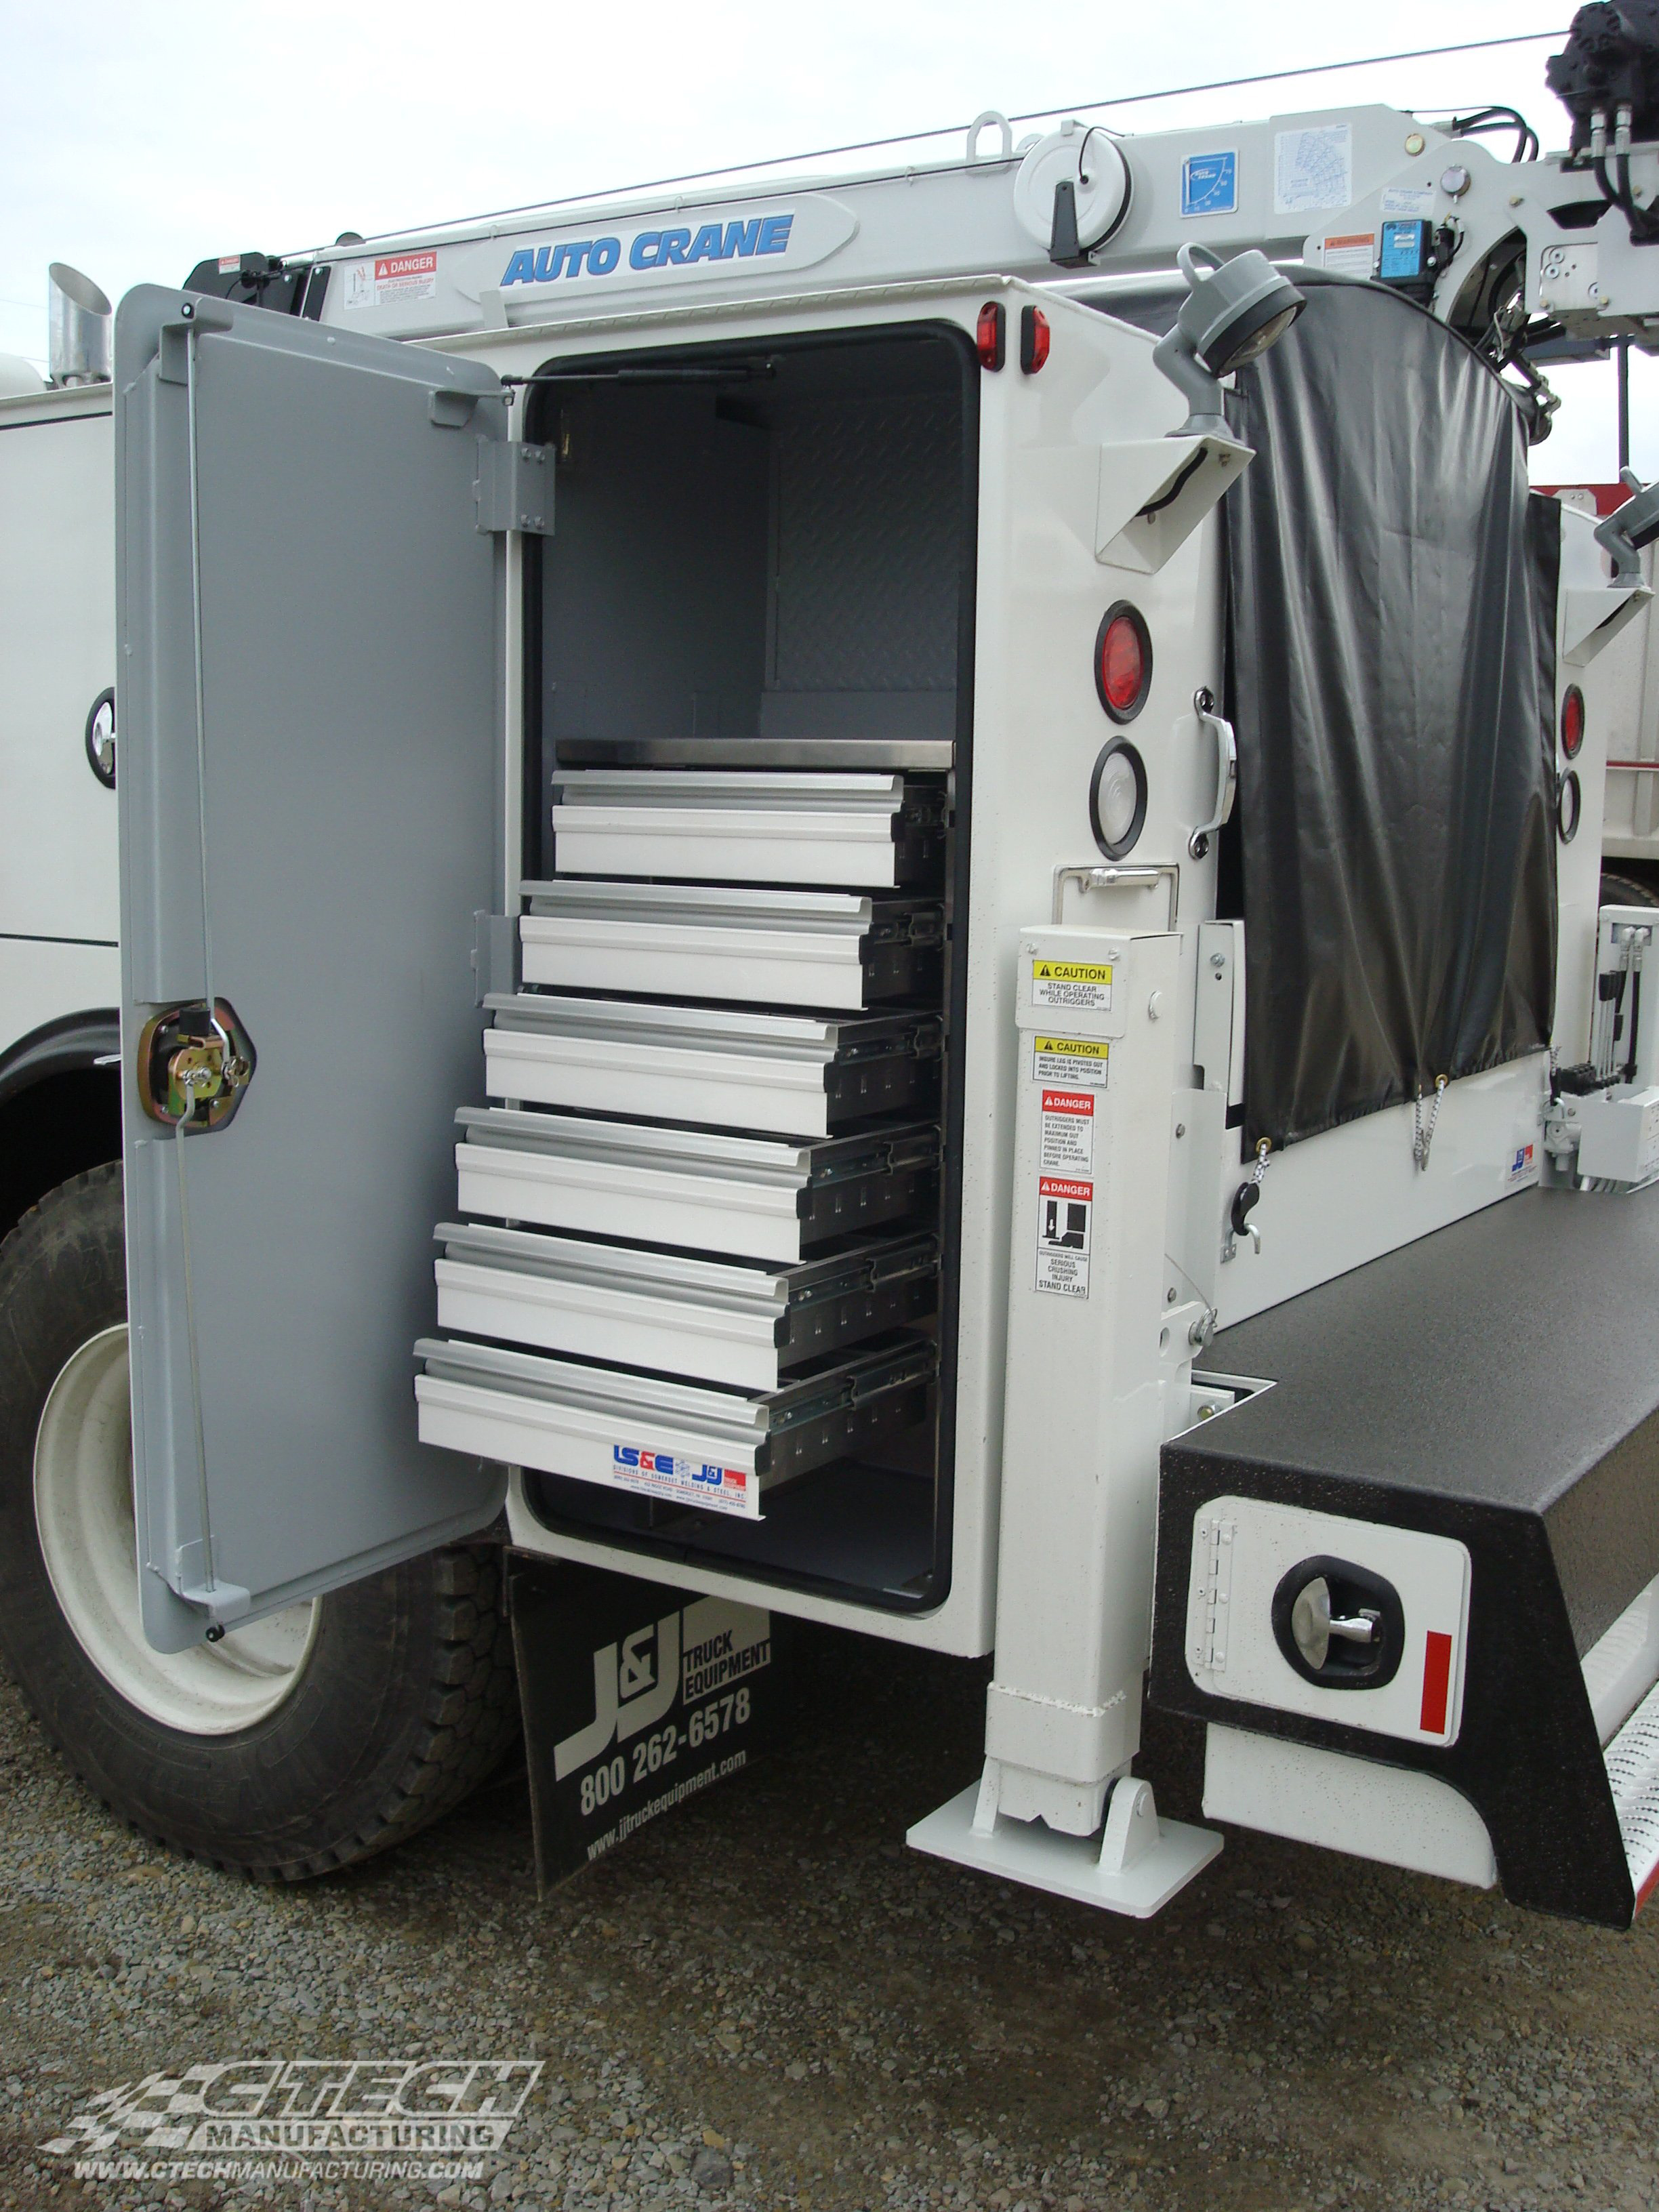 CTech has over 40 standard tool drawer configurations built specifically for Auto Crane service bodies, ready to order and delivered in 10 business days! All drawers come equipped with MotionLatch drawer latching technology that keeps stored contents safe and fingertip-accessible.